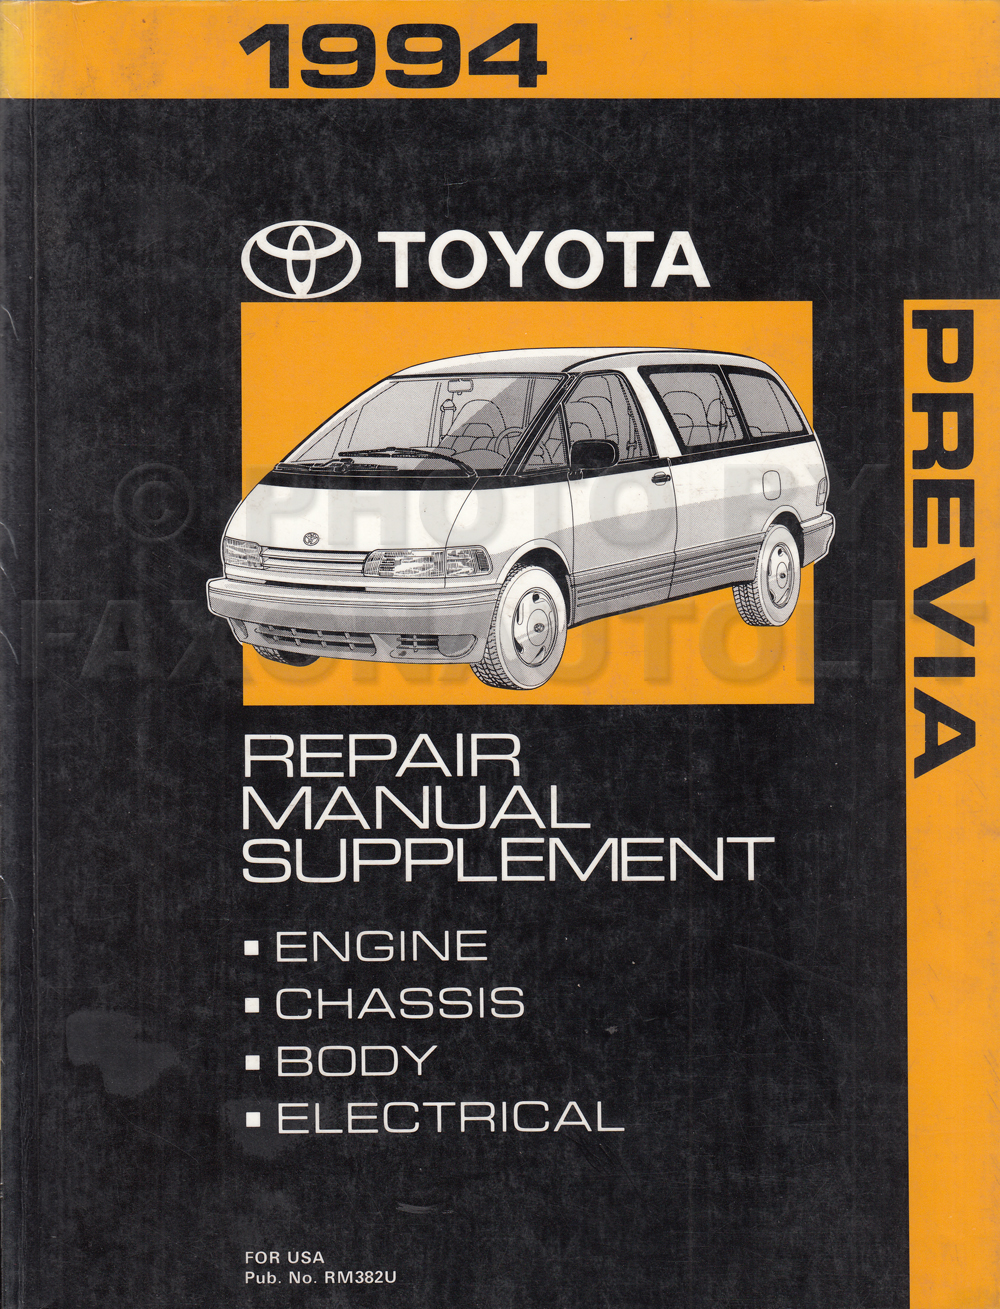 1994ToyotaPreviaORMS search 1995 toyota previa wiring diagram at panicattacktreatment.co